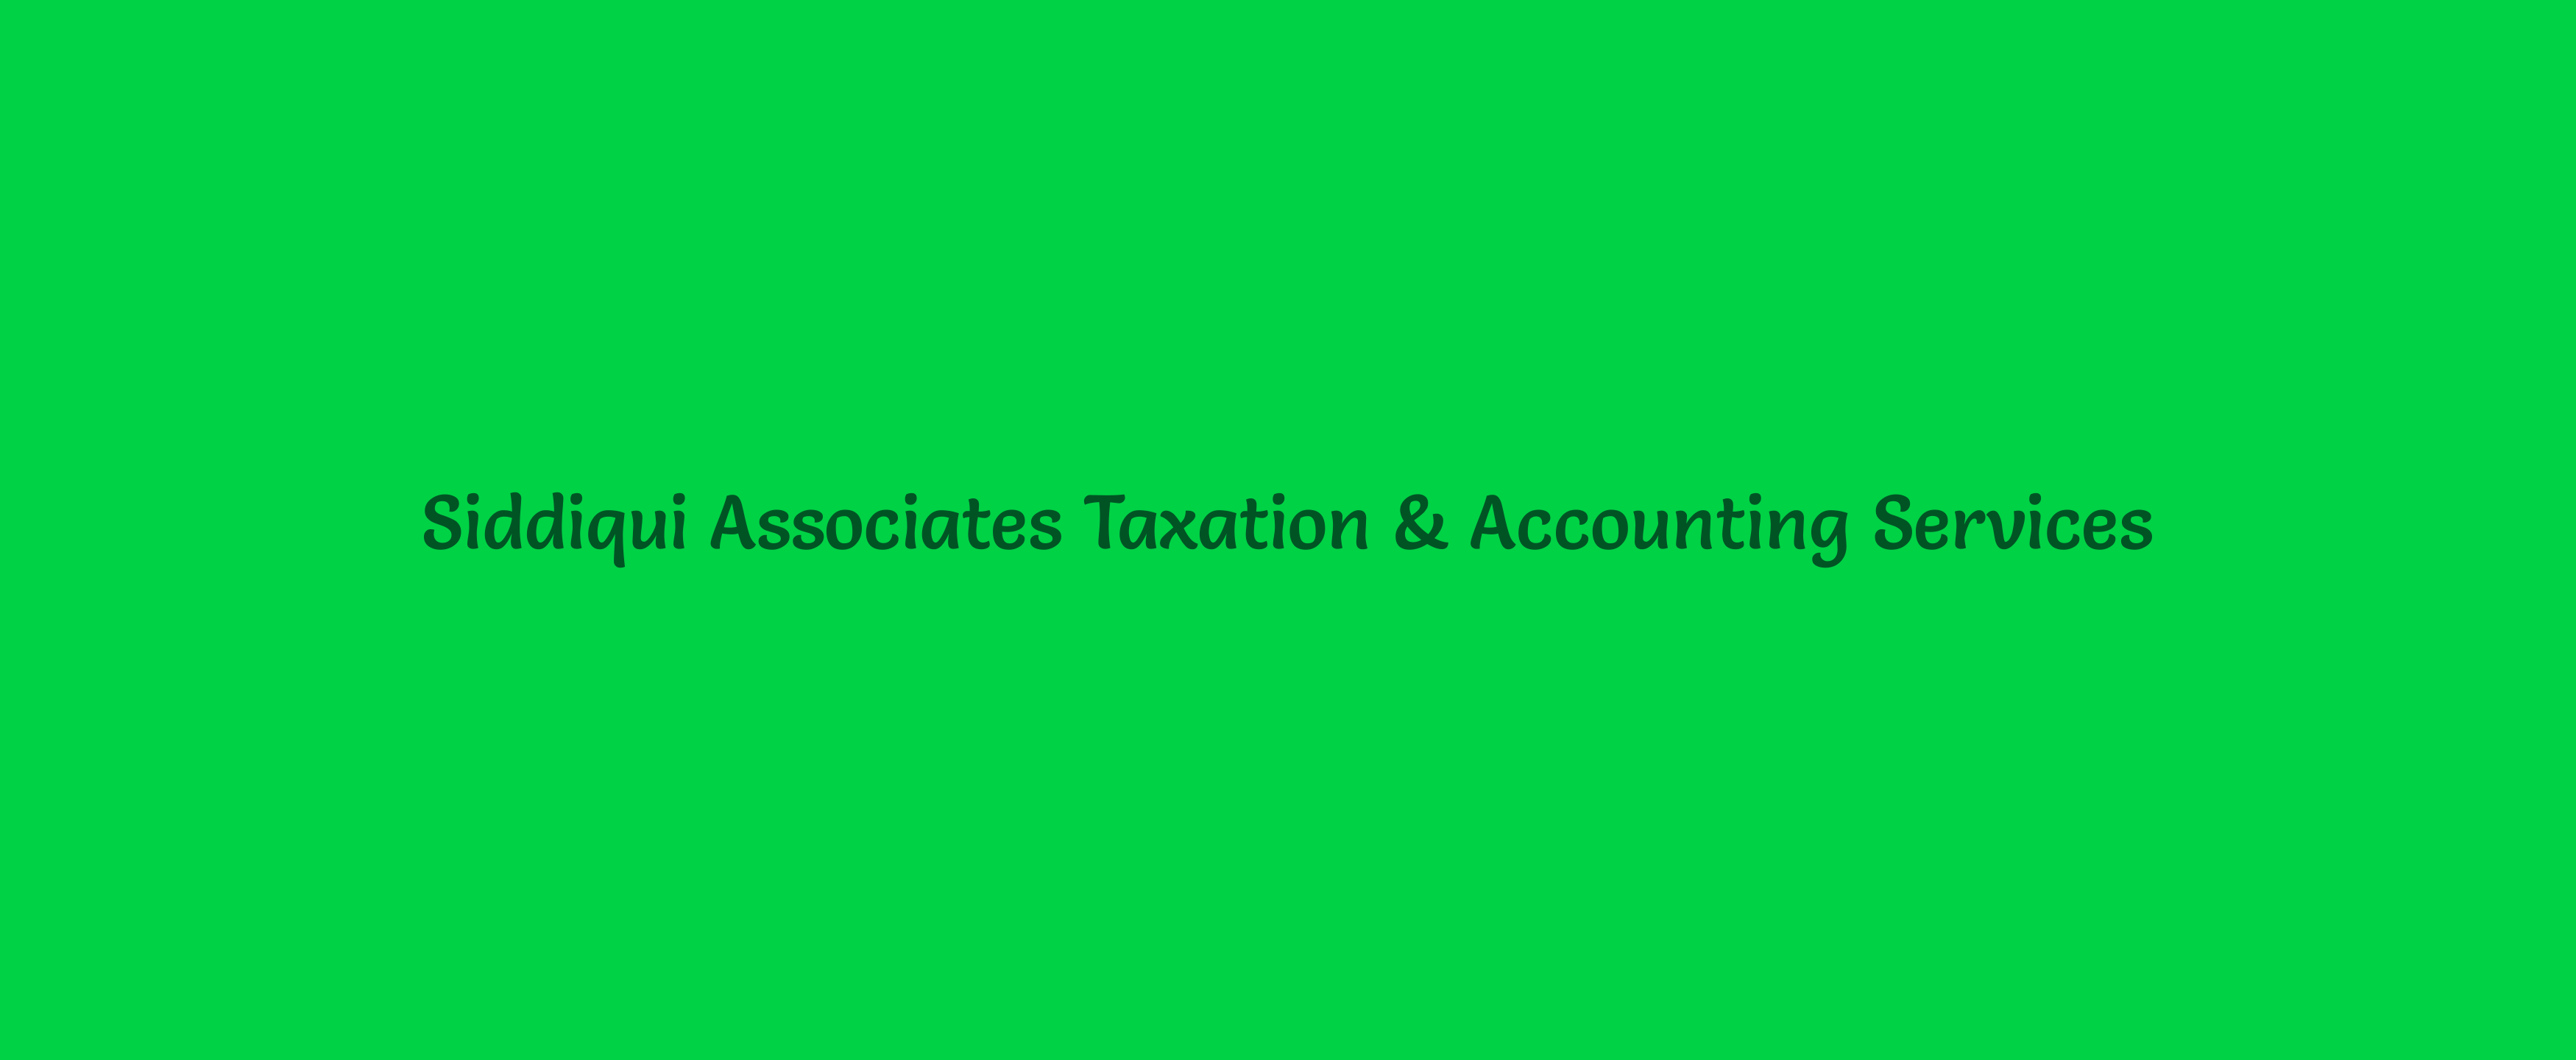 Siddiqui Associates Taxation & Accounting Services